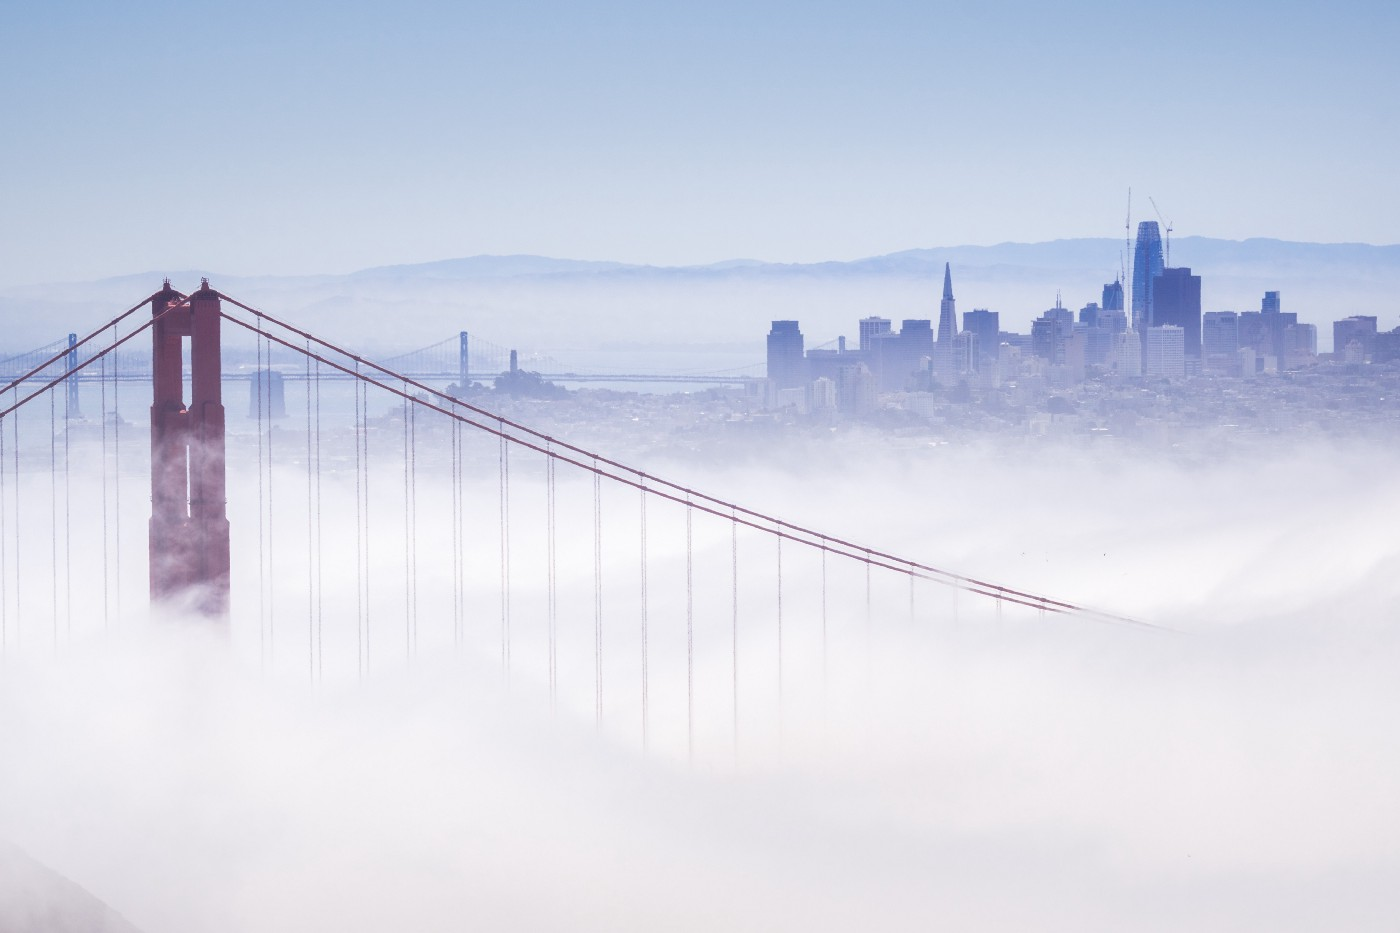 Photo of fog overflowing the Golden Gate Bridge and invading the city. You can see one tower of the bridge in muted red, with cables sweeping down and away from it, artistically, and disappearing into the fluffy white. In the background is the bluish charcoal grey skyline of San Francisco. The sky is a dull blue getting ready for twilight. You might think of the fog as a blanket, but it's chilly rather than cozy.